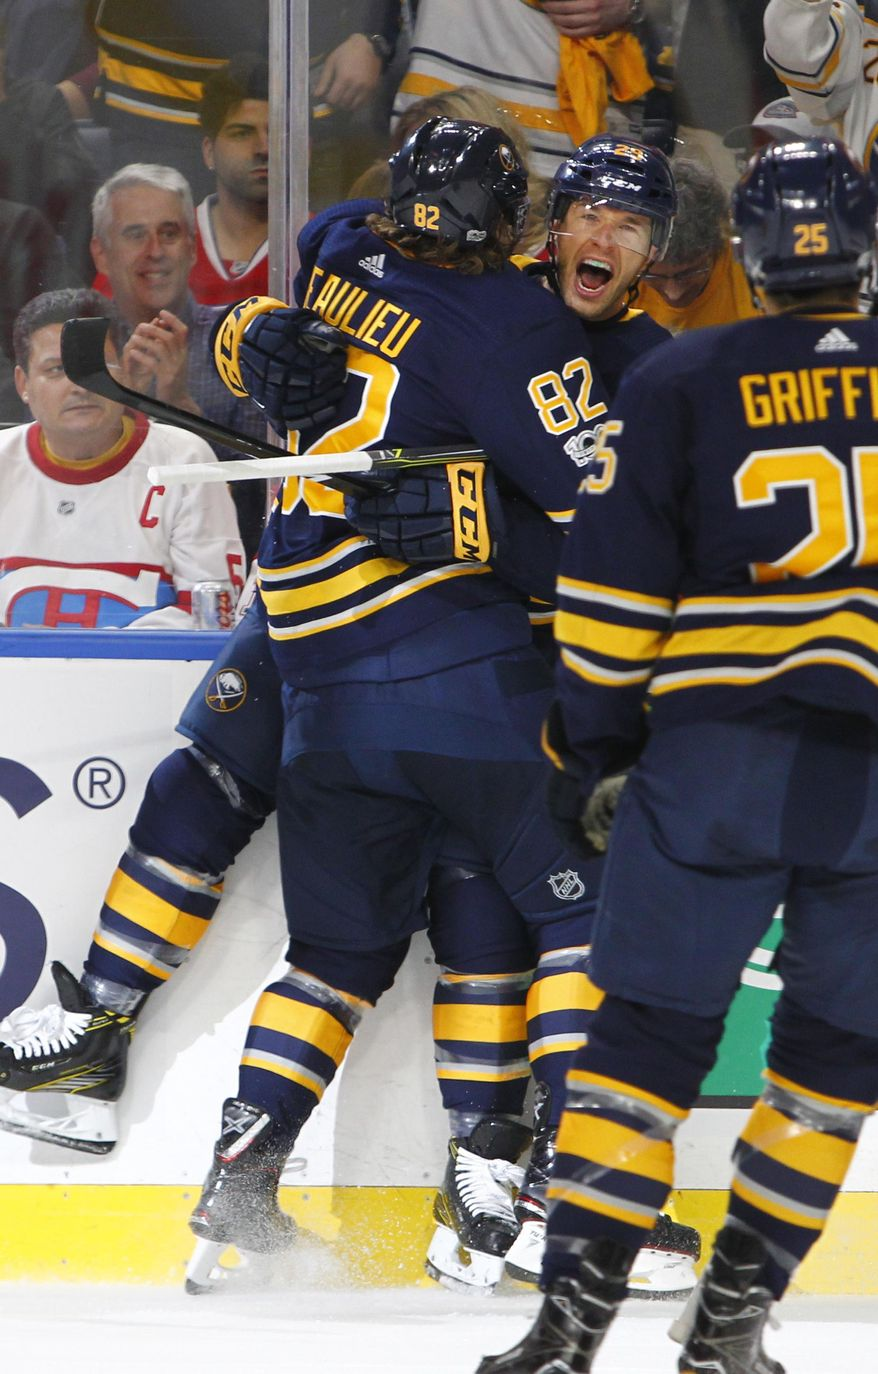 Buffalo Sabres Nathan Beaulieu (82) celebrates a goal with Jason Pominville (29) during the first period of an NHL hockey game against the Montreal Canadiens, Thursday Oct. 5, 2017, in Buffalo, N.Y. (AP Photo/Jeffrey T. Barnes)